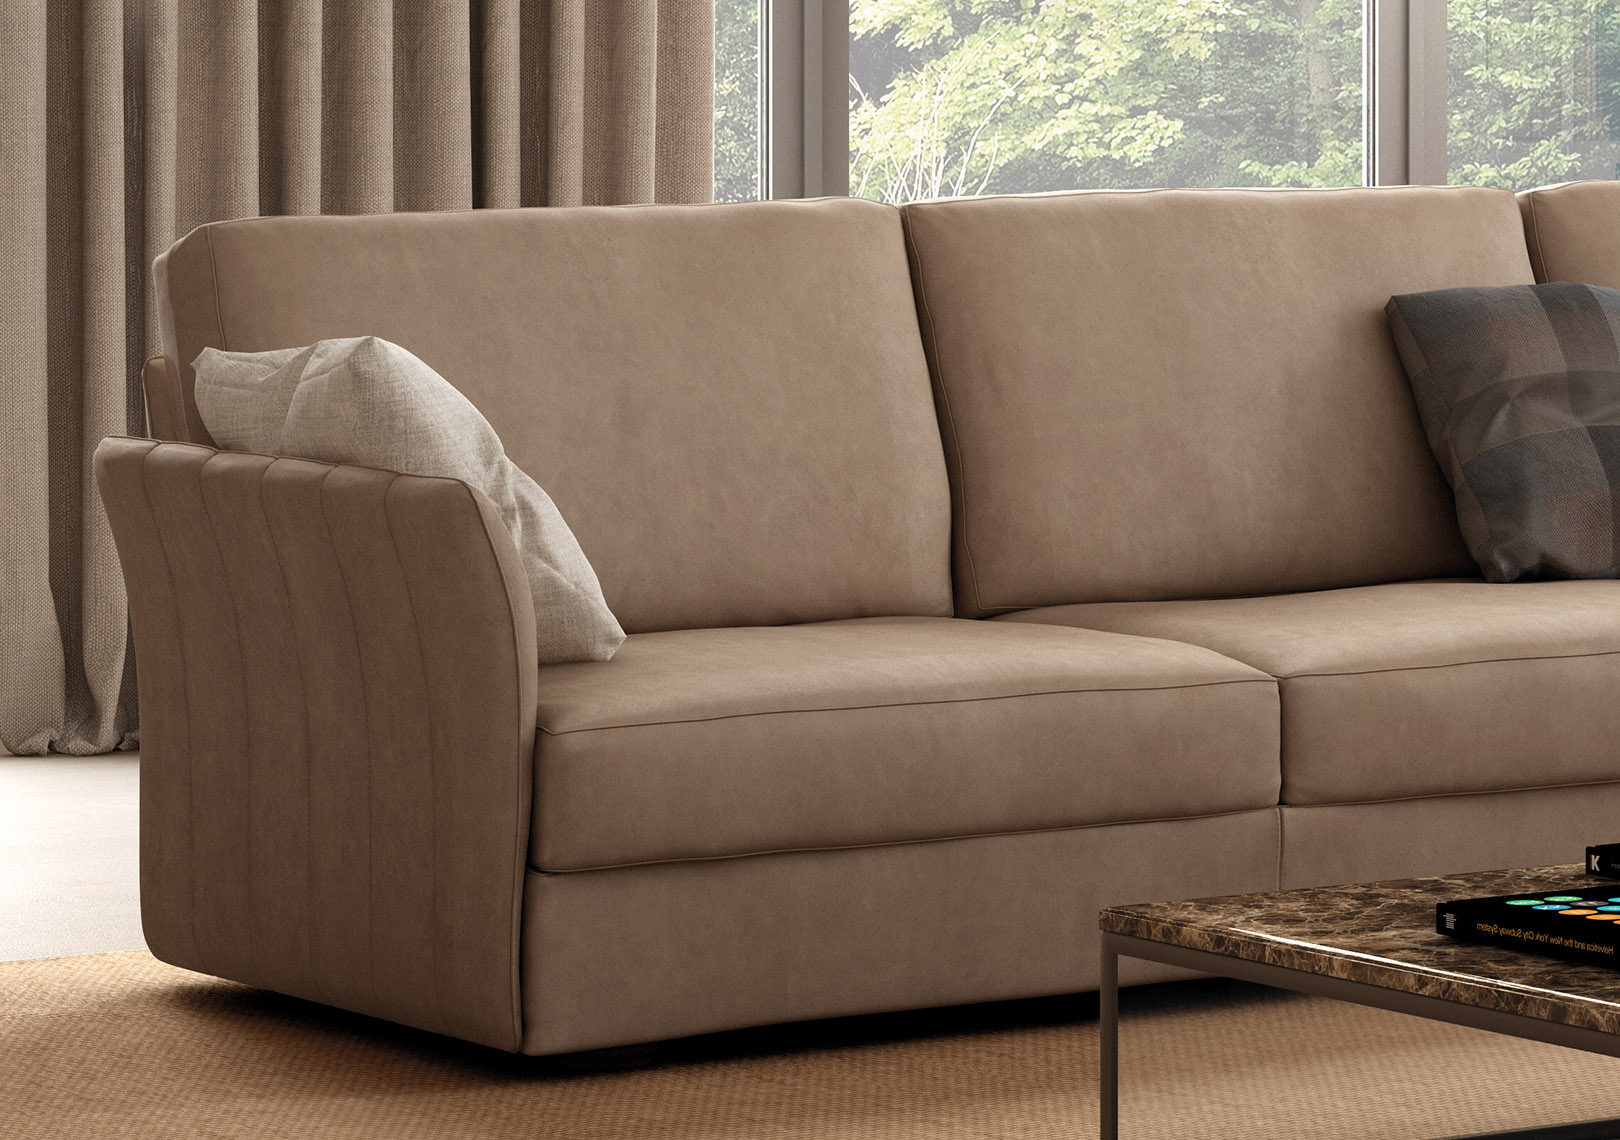 Italian Sectional Sofa Set In Luxury Leather Fort Worth